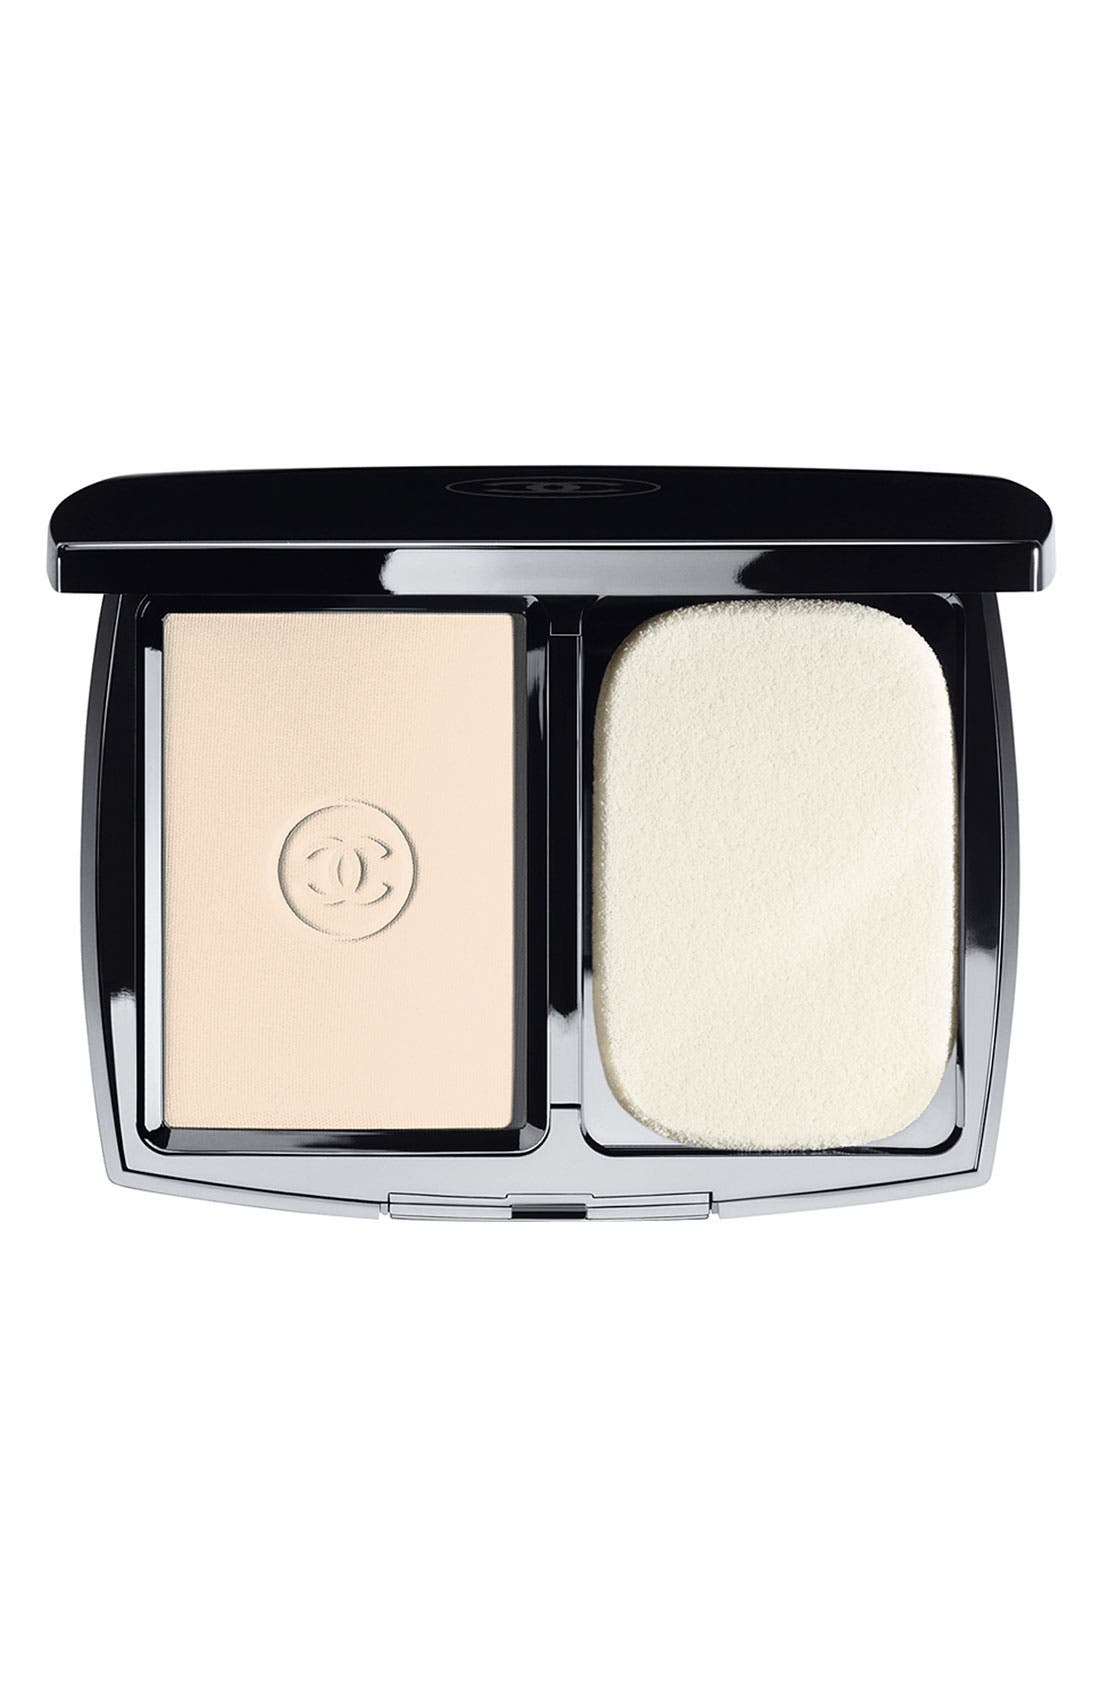 DOUBLE PERFECTION LUMIÈRE<br />Long-Wear Flawless Sunscreen Powder Makeup Broad Spectrum SPF 15,                         Main,                         color, 250